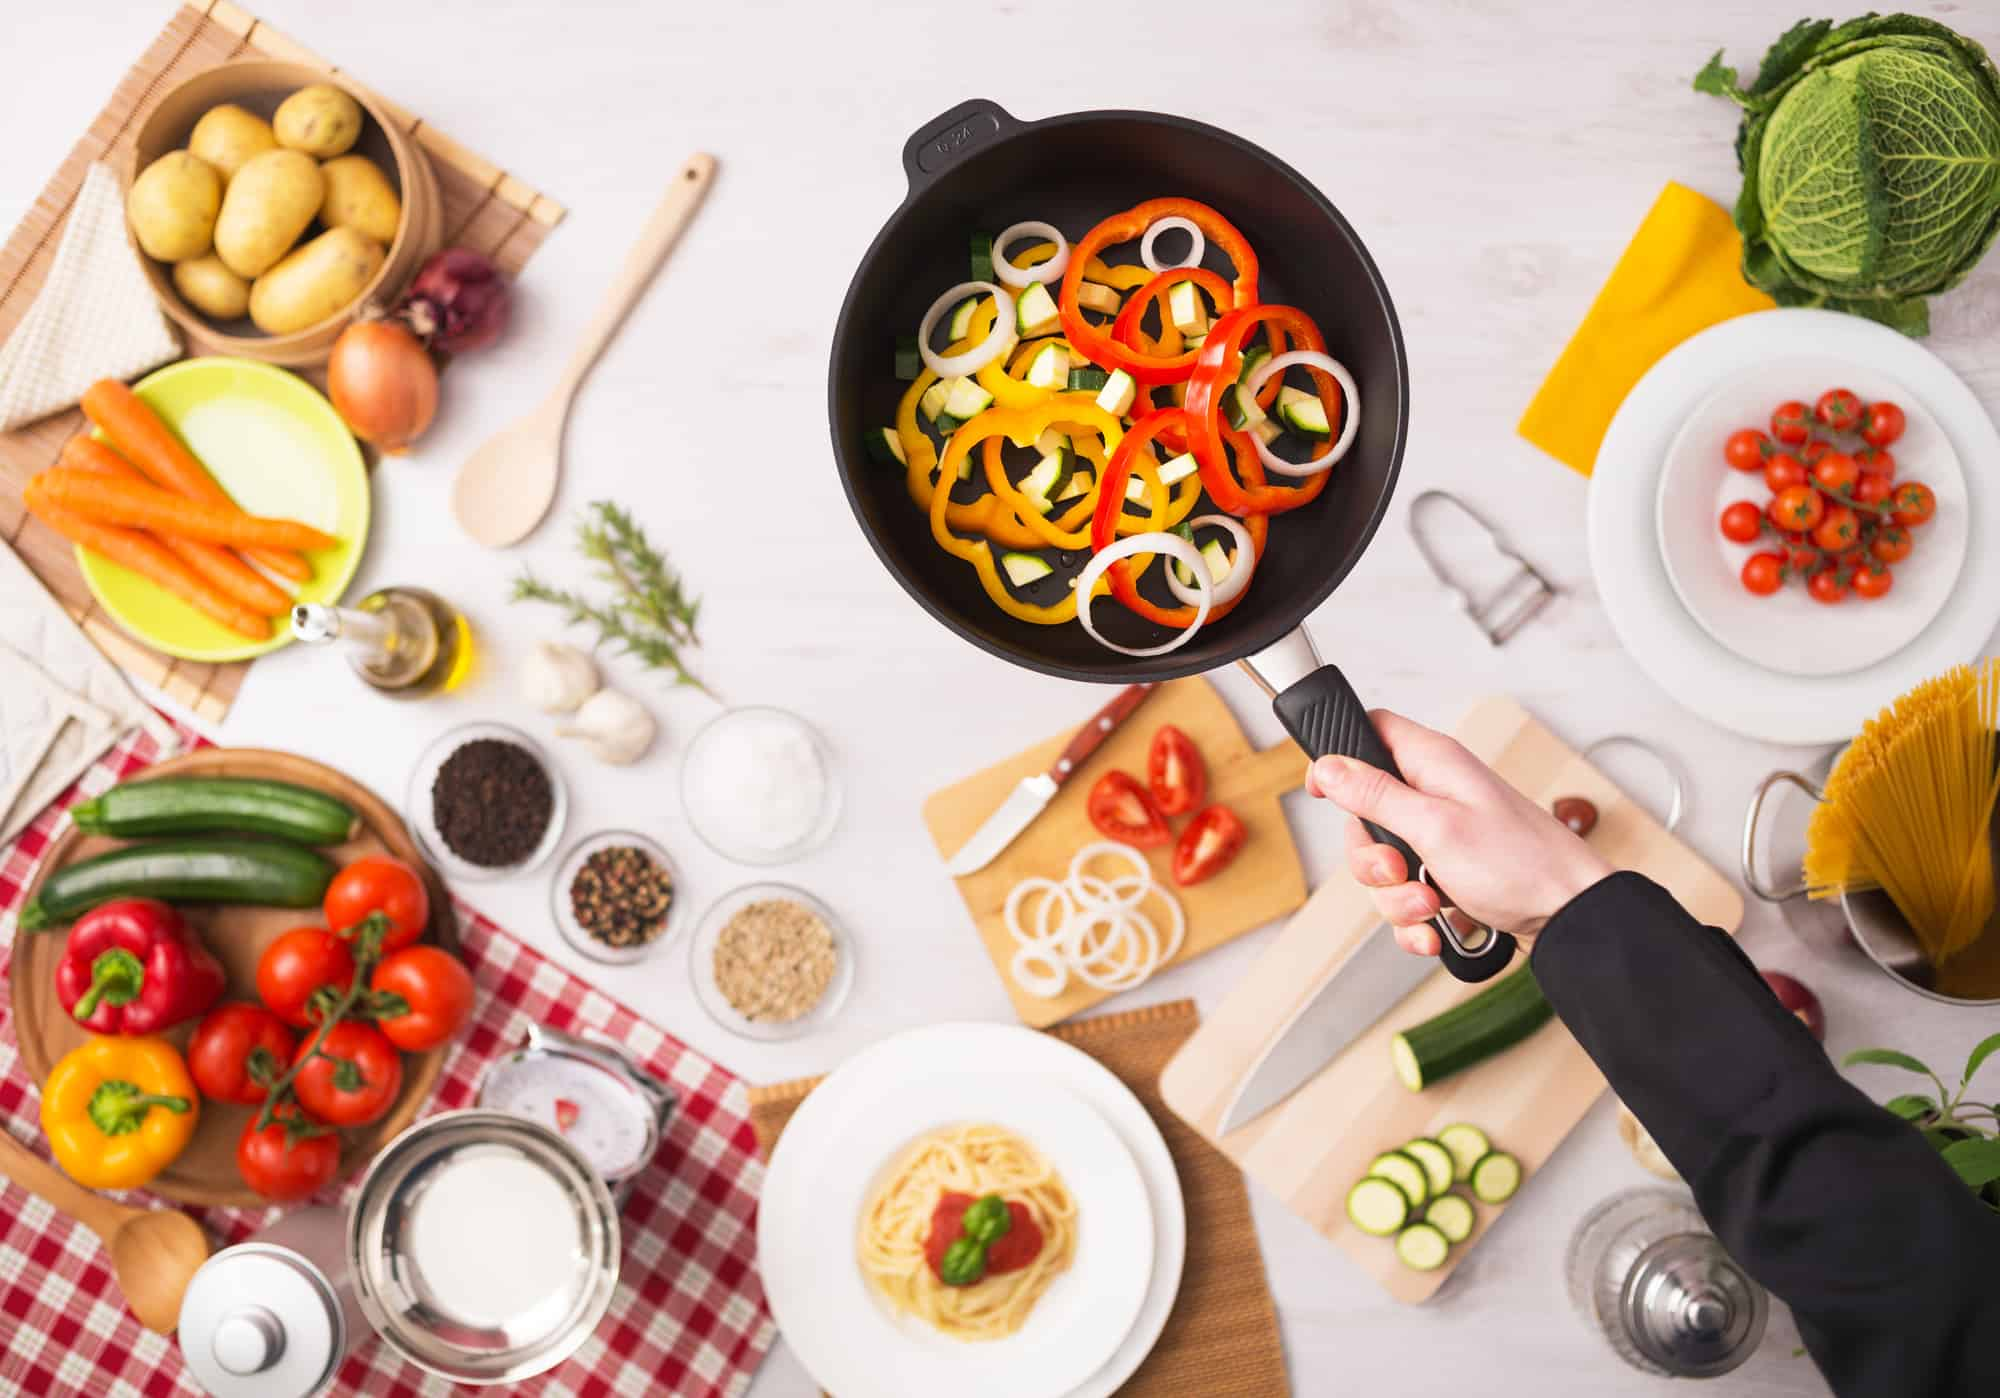 Professional cook frying fresh sliced vegetables in a nonstick pan hands close up, food ingredients and kitchenware on background